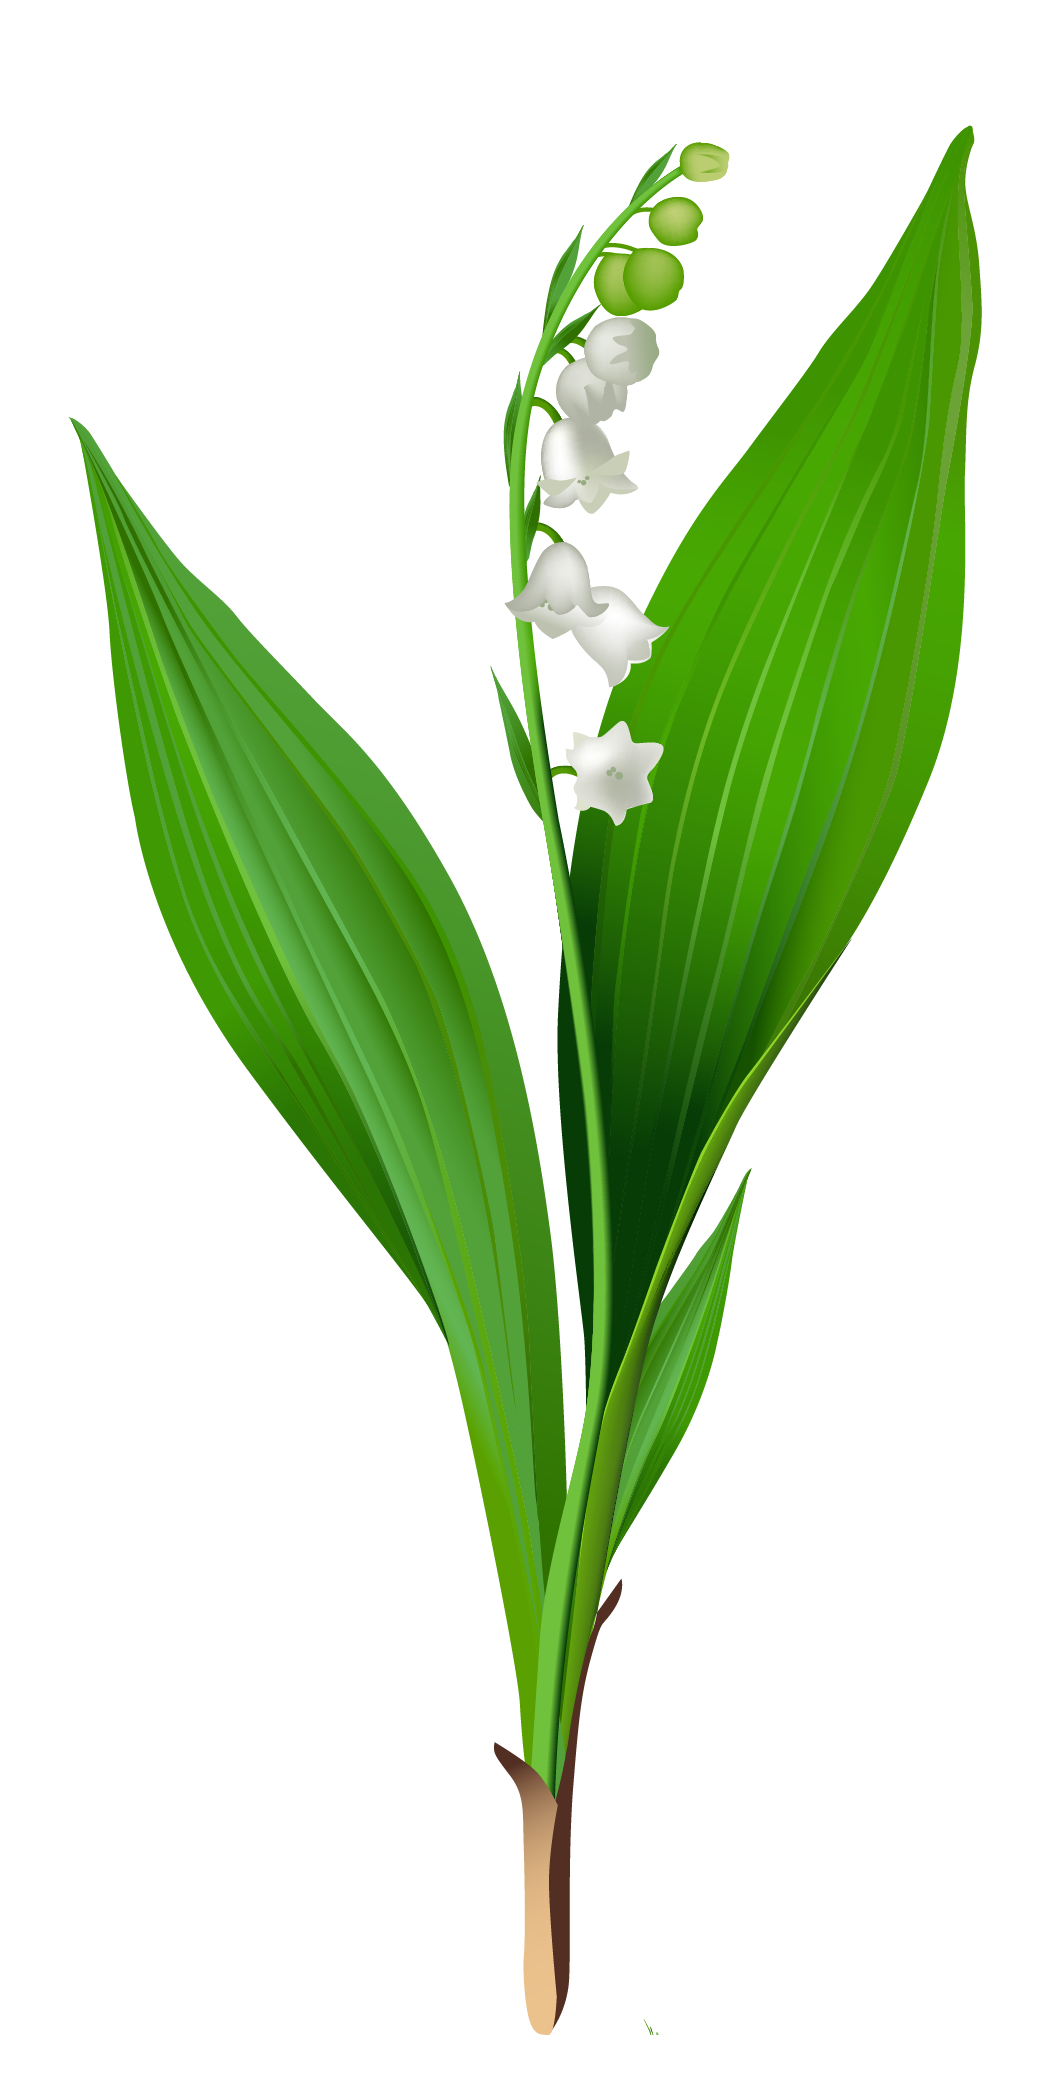 lily of the valley clip art. Black Bedroom Furniture Sets. Home Design Ideas